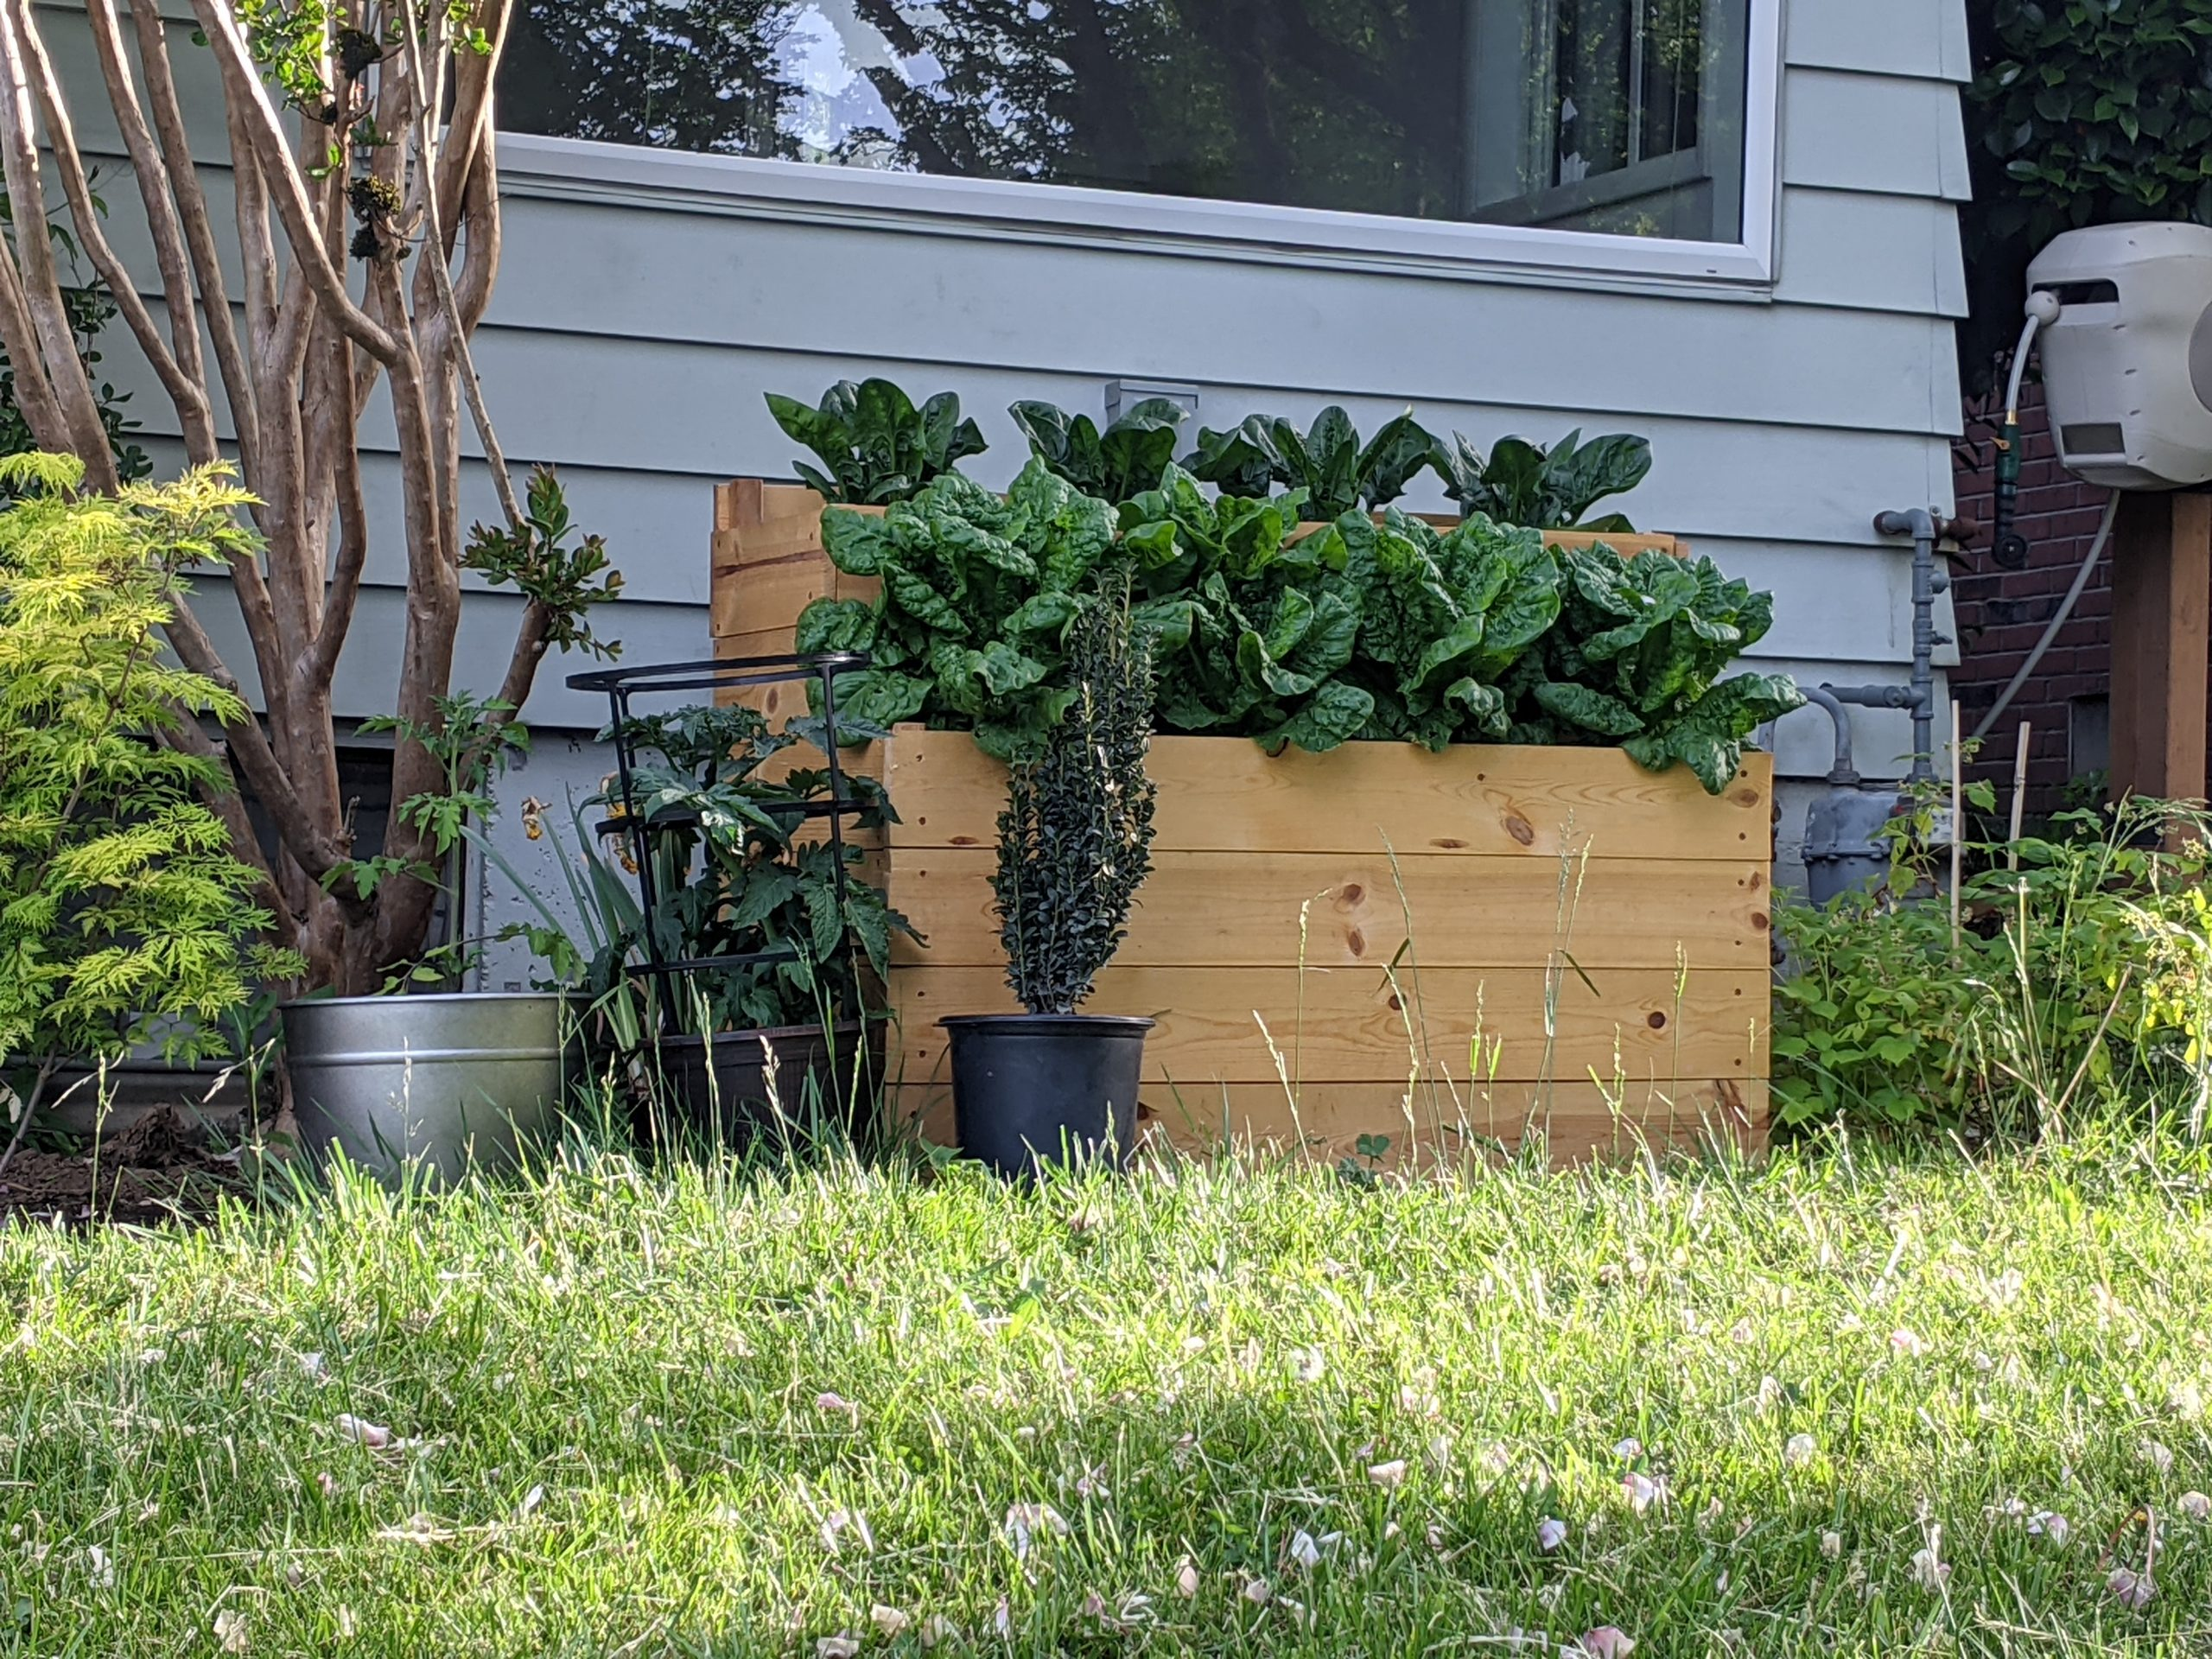 kale and chard grow out of a small wooden bench